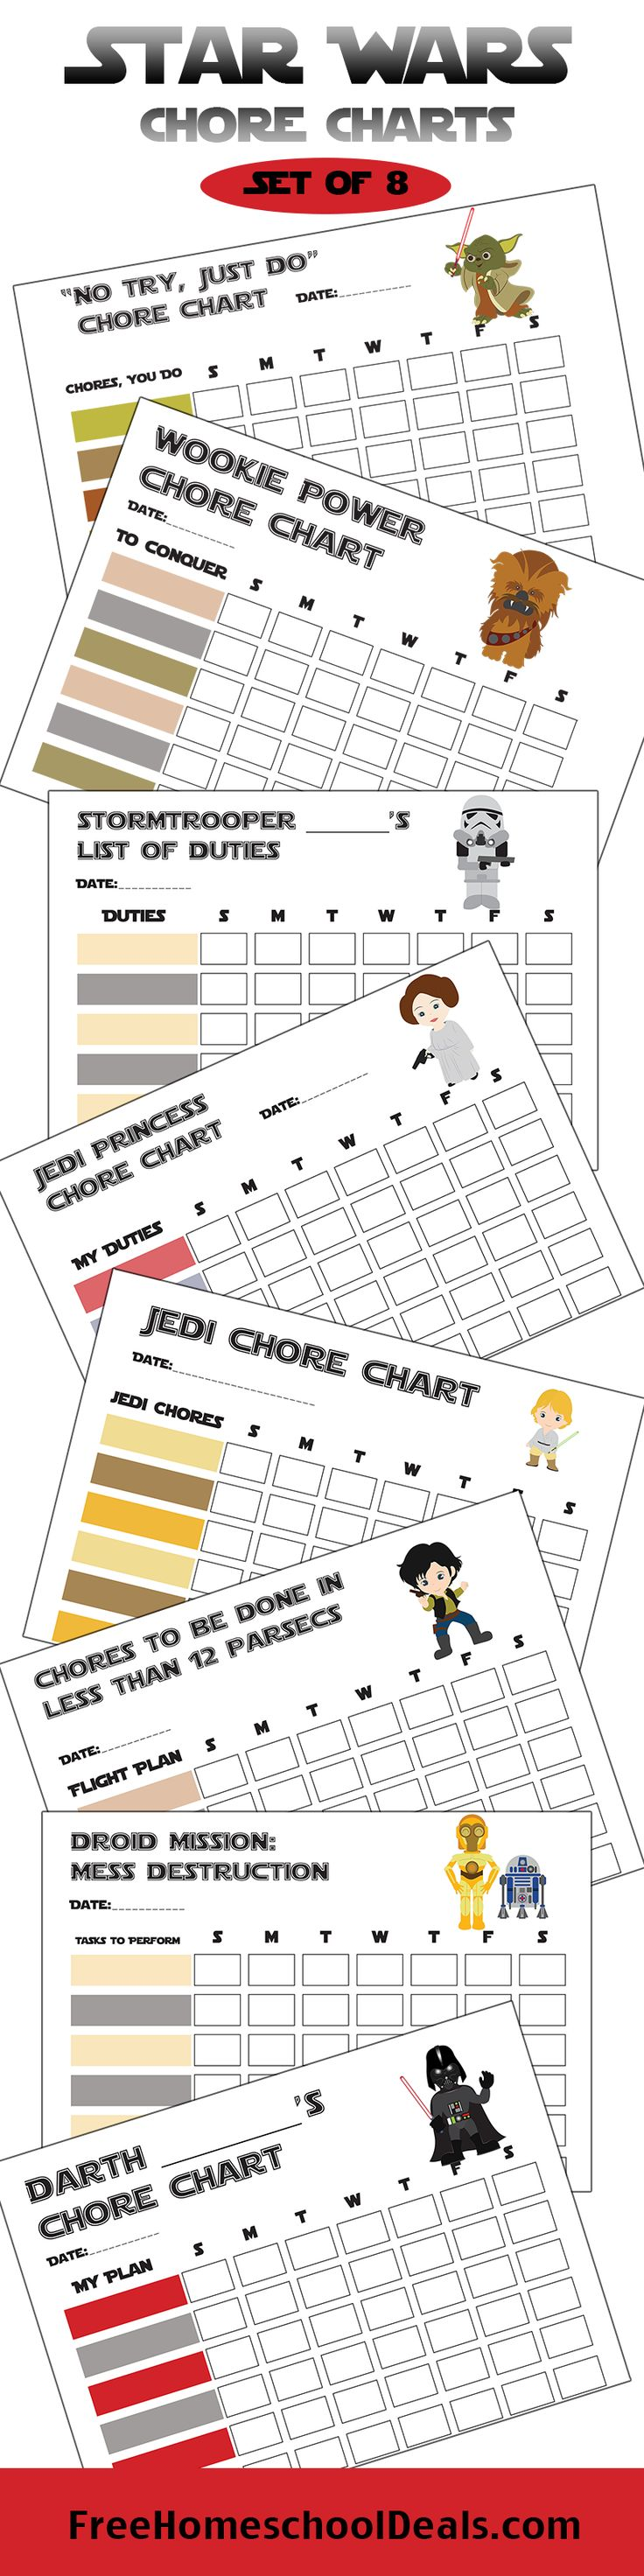 Free Printable Star Wars Chore Charts (instant download!) | Free Homeschool Deals ©